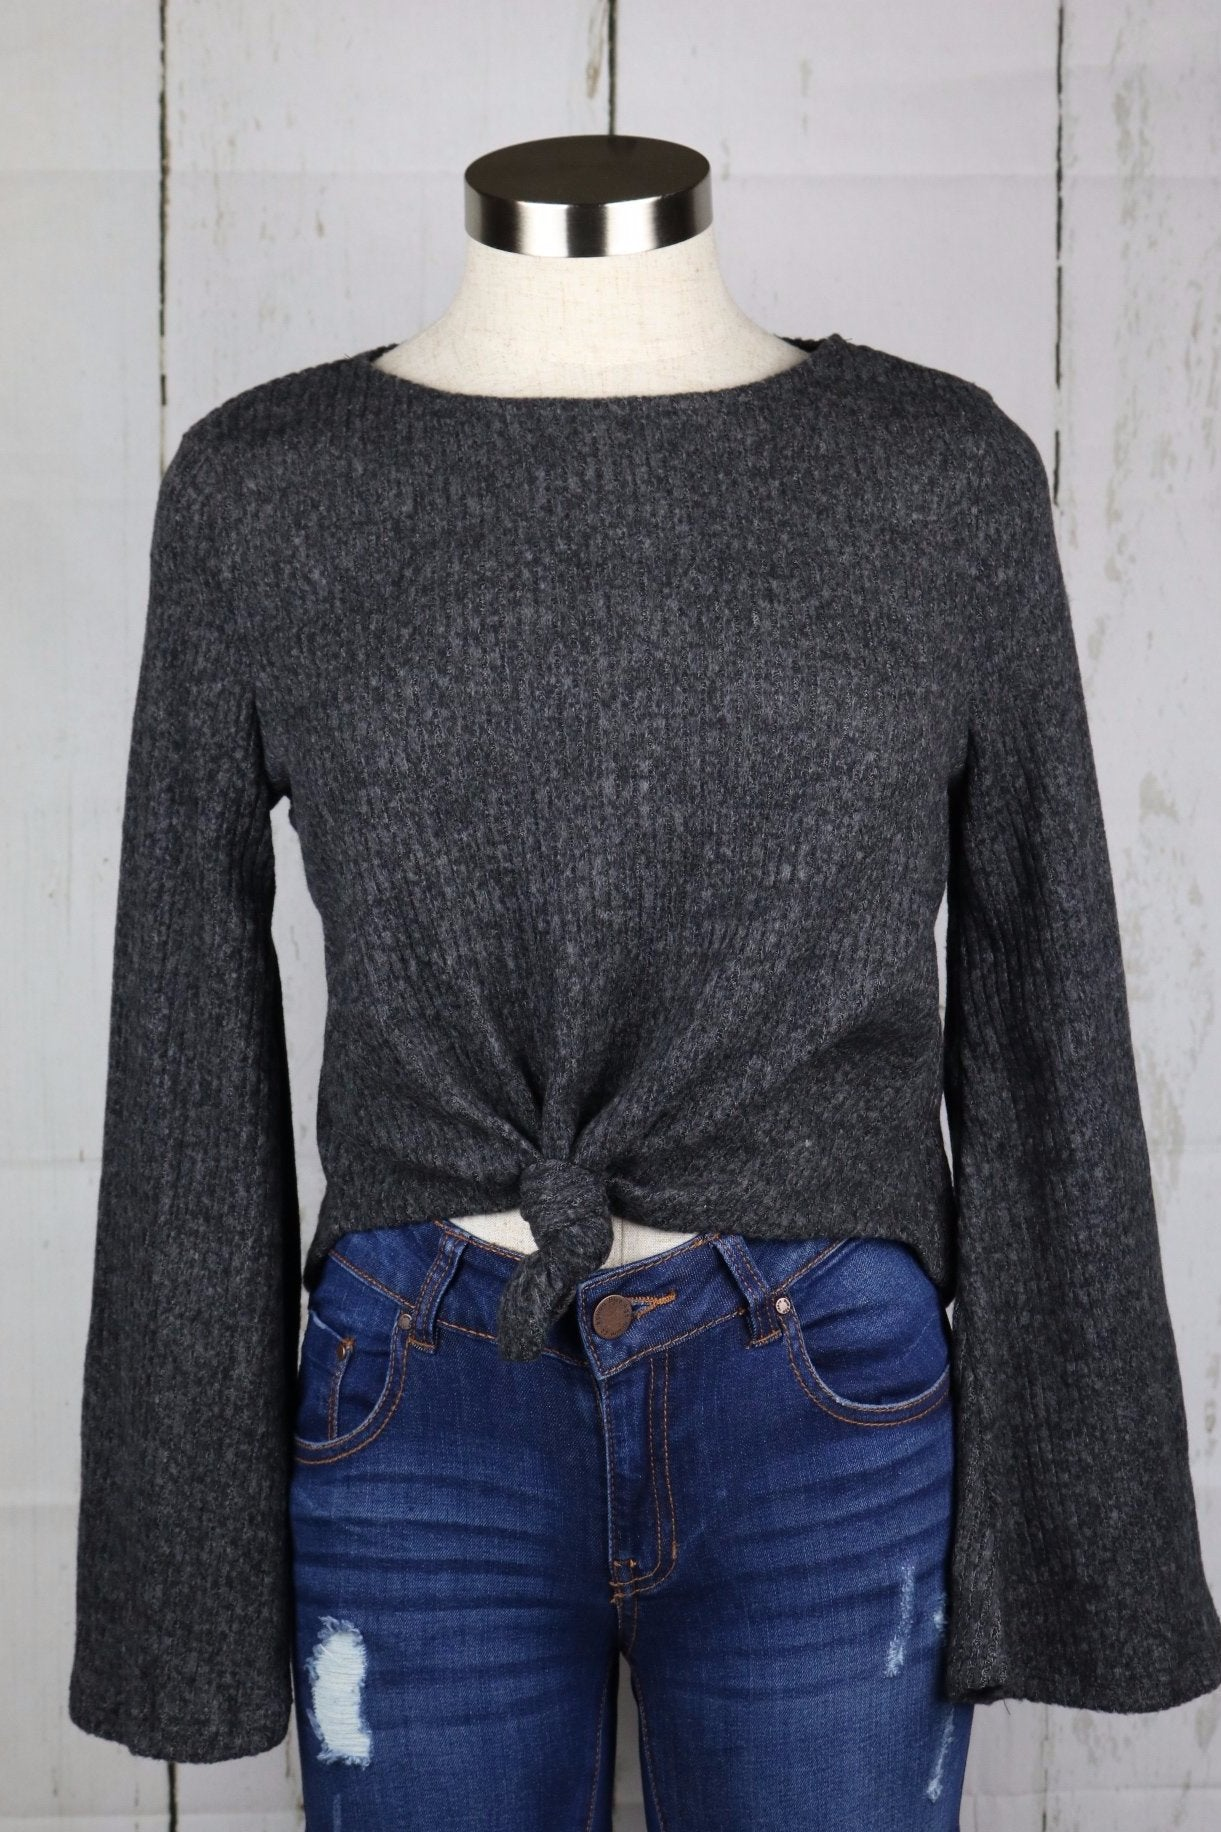 Zaylee Knot Top (Charcoal)